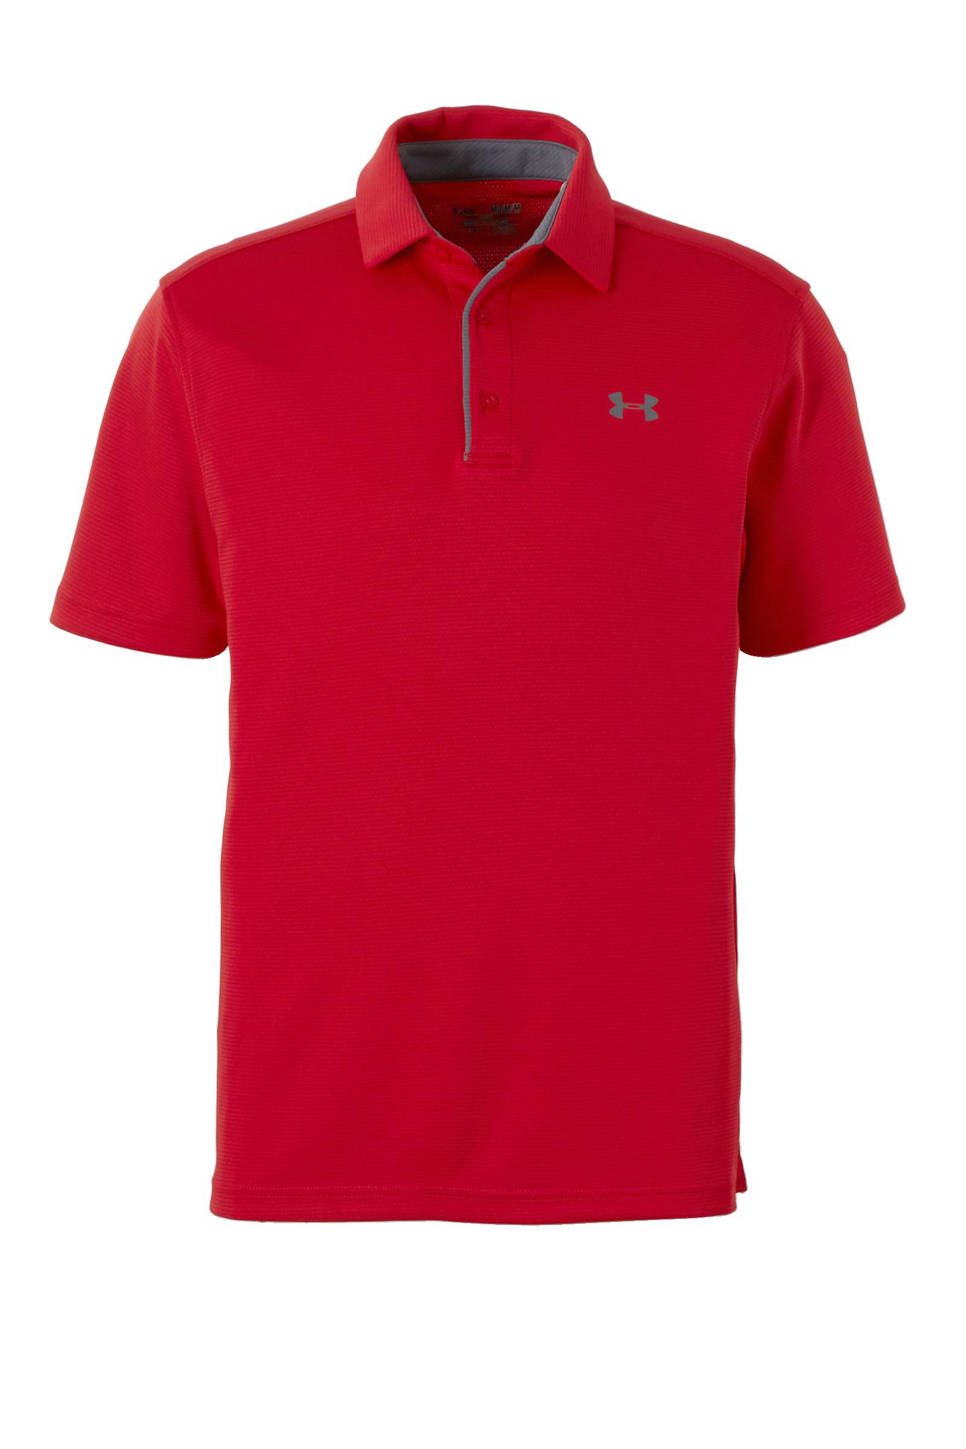 Under Armour   sportpolo, Rood/grijs